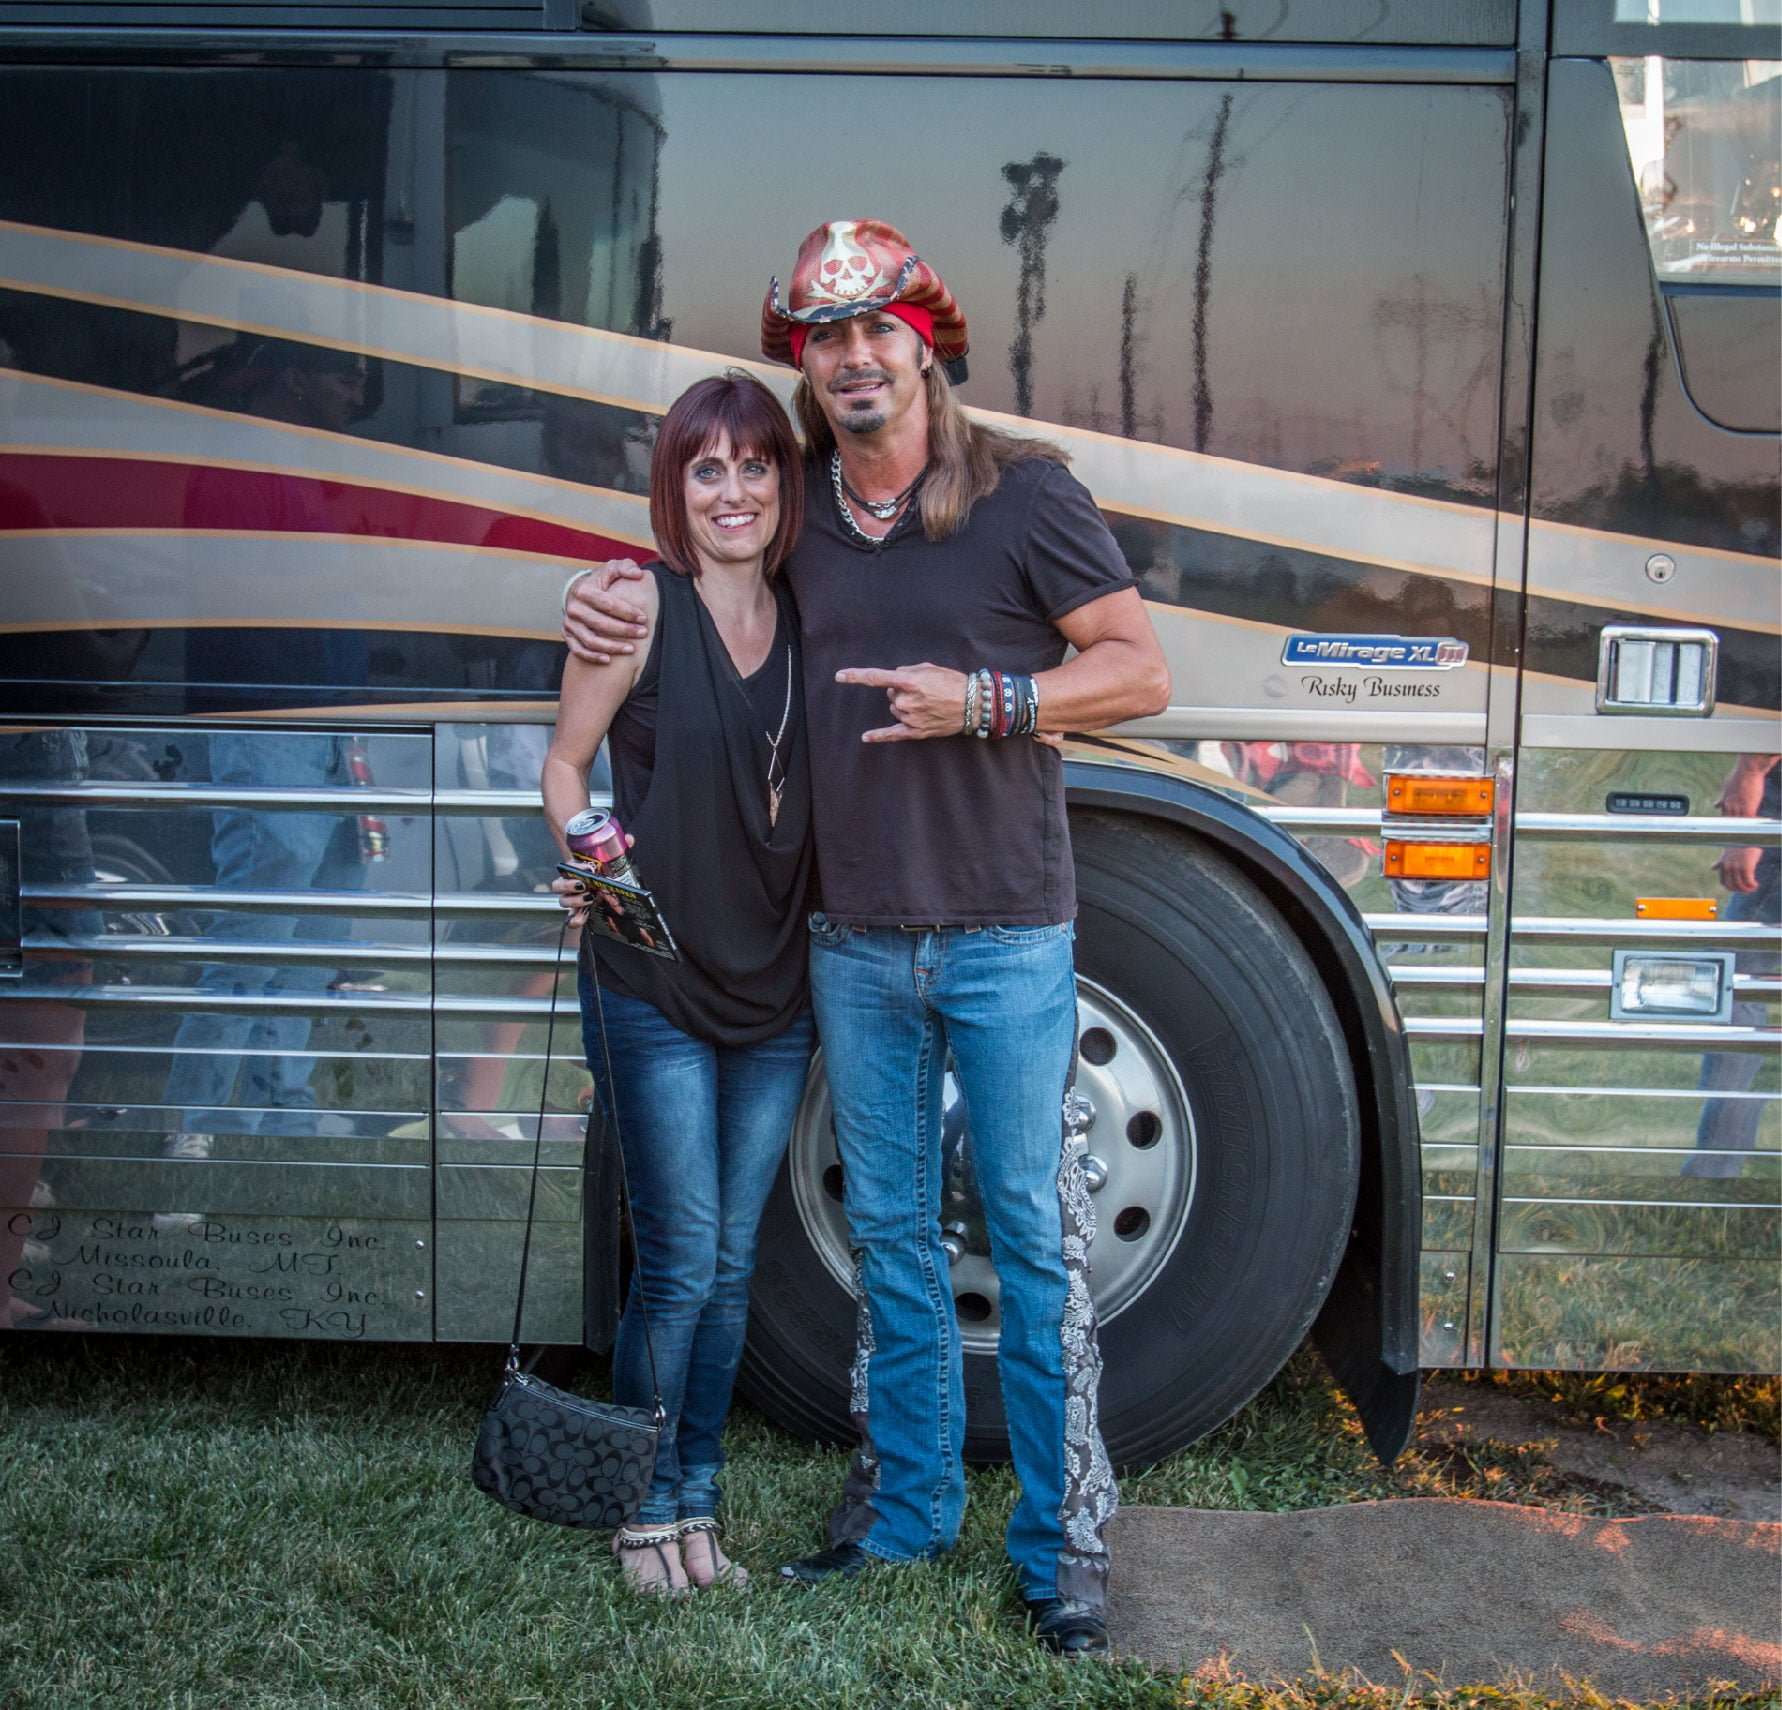 meet washington county singles Ride connection offers the opportunity to serve your community through meet, salute, and drive a veteran washington county this is an ongoing opportunity located in portland, oregon.